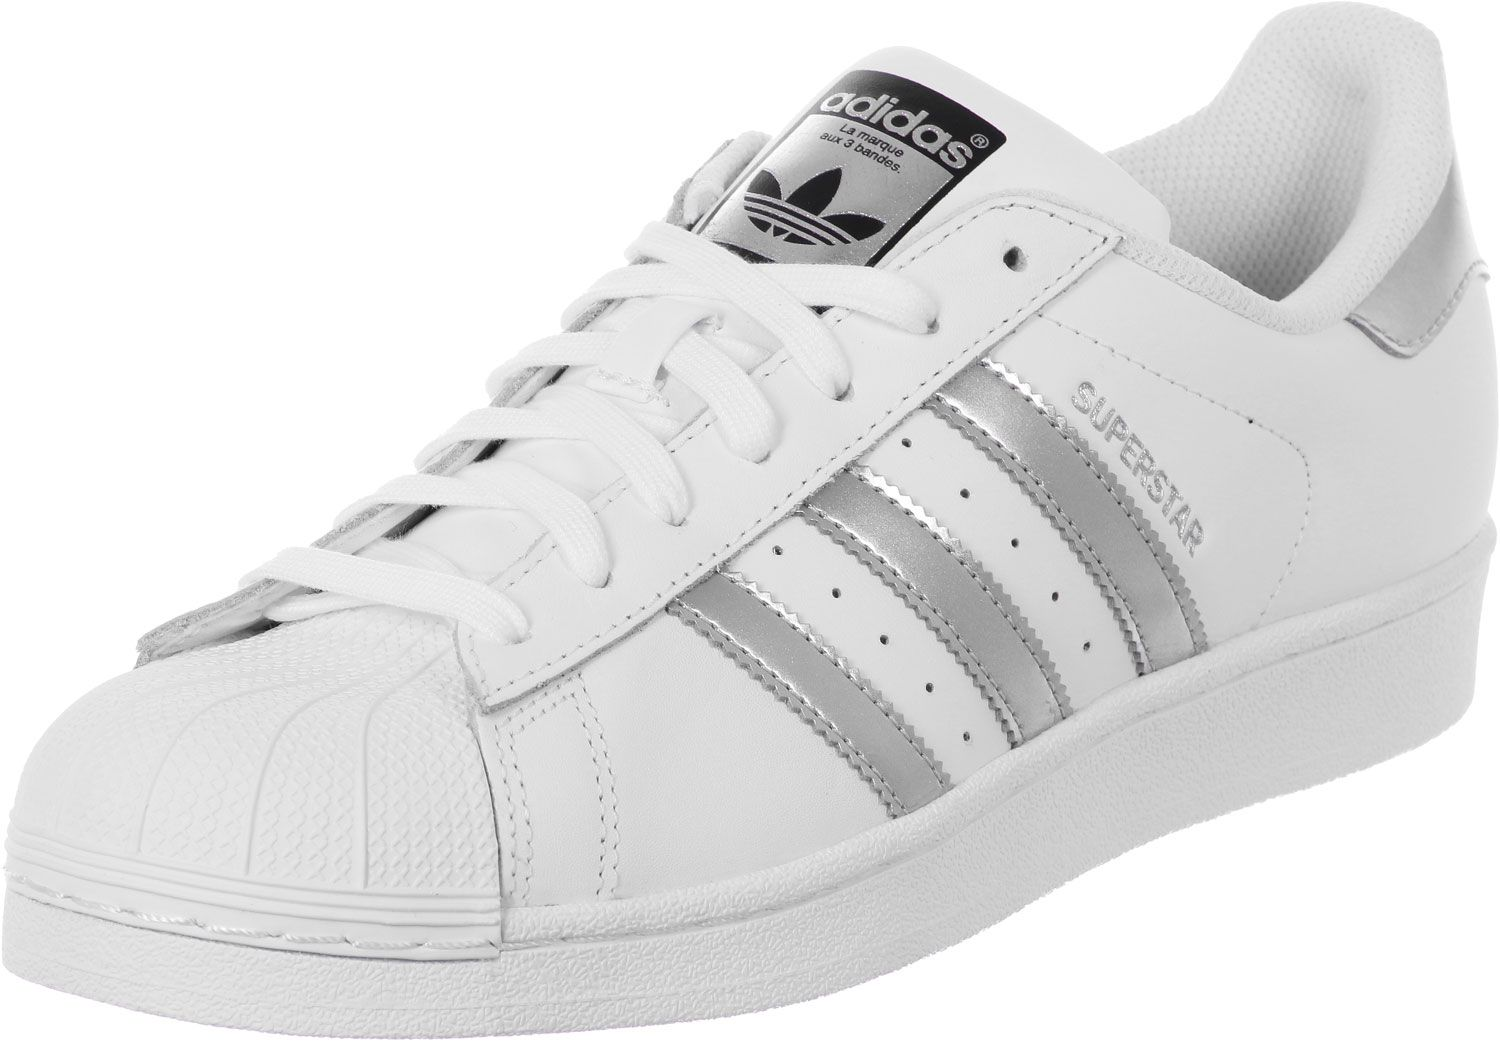 Superstar W shoes white silver adidas